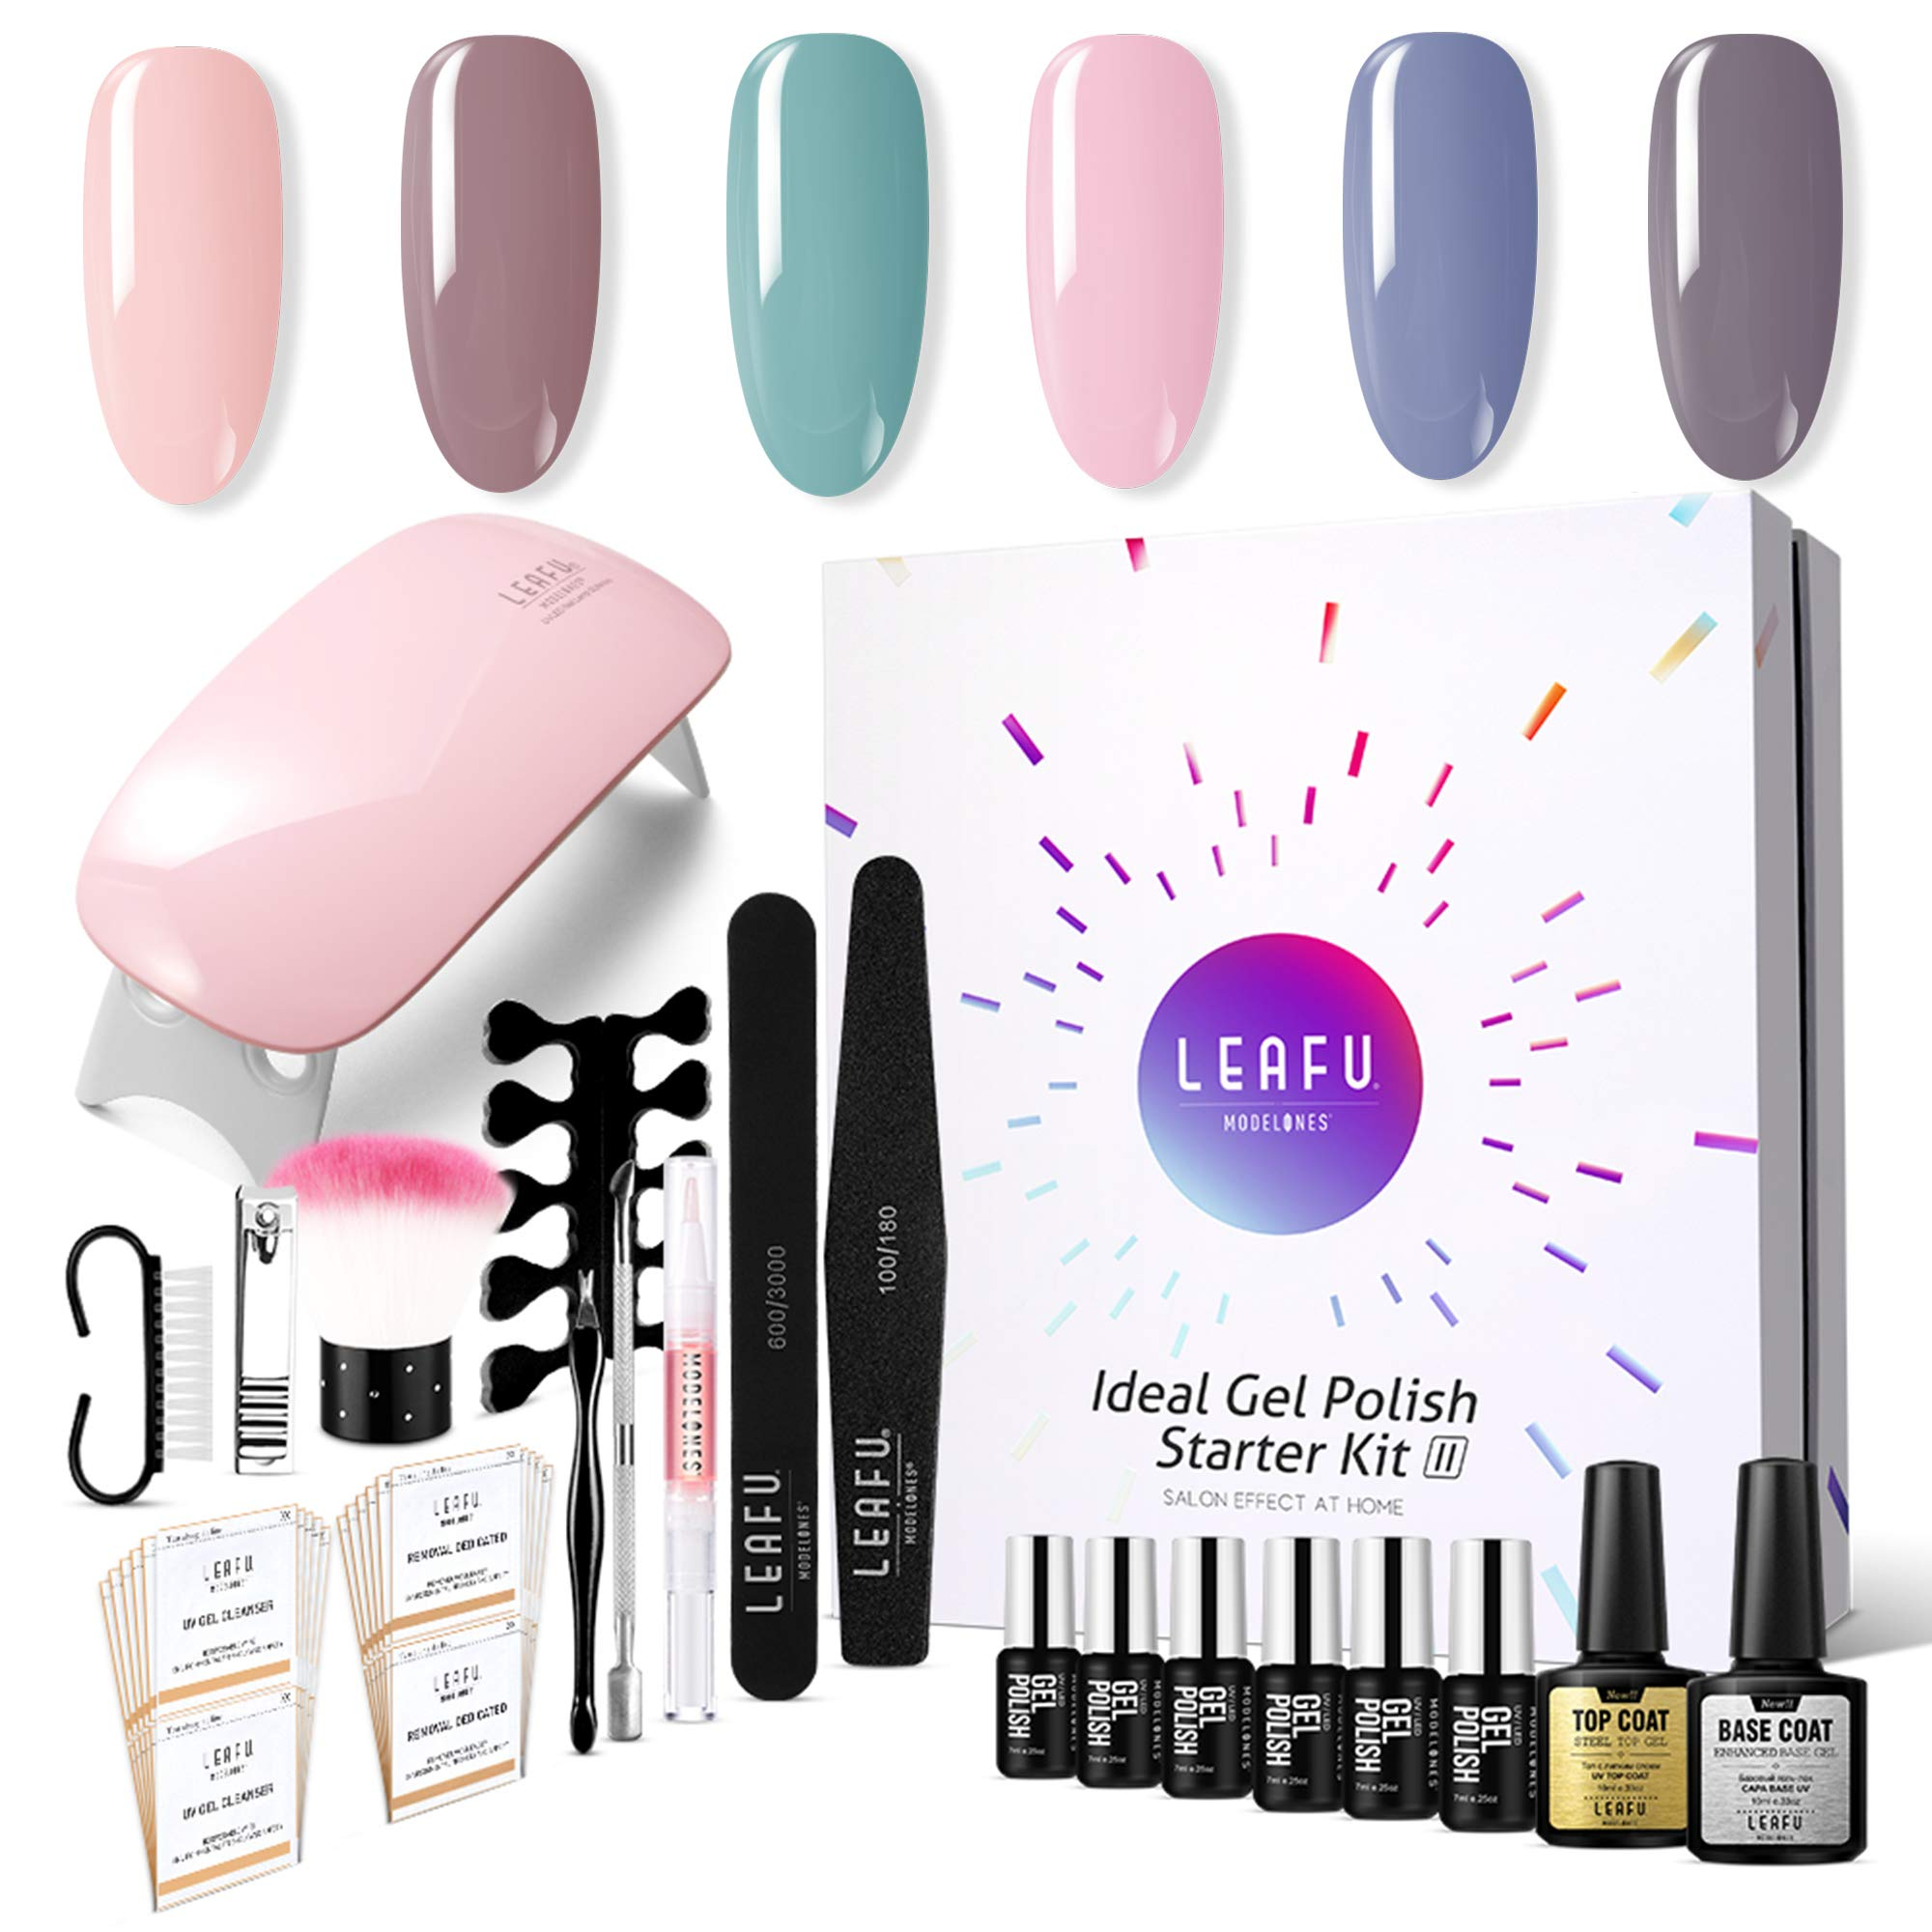 Modelones Gel Nail Starter Kit, with 6 Color Gel in Tiny Bottles 7ml, Base and Top Coat Set 10ml each, 6W Mini Nail Lamp and Manicure Tools Set by modelones